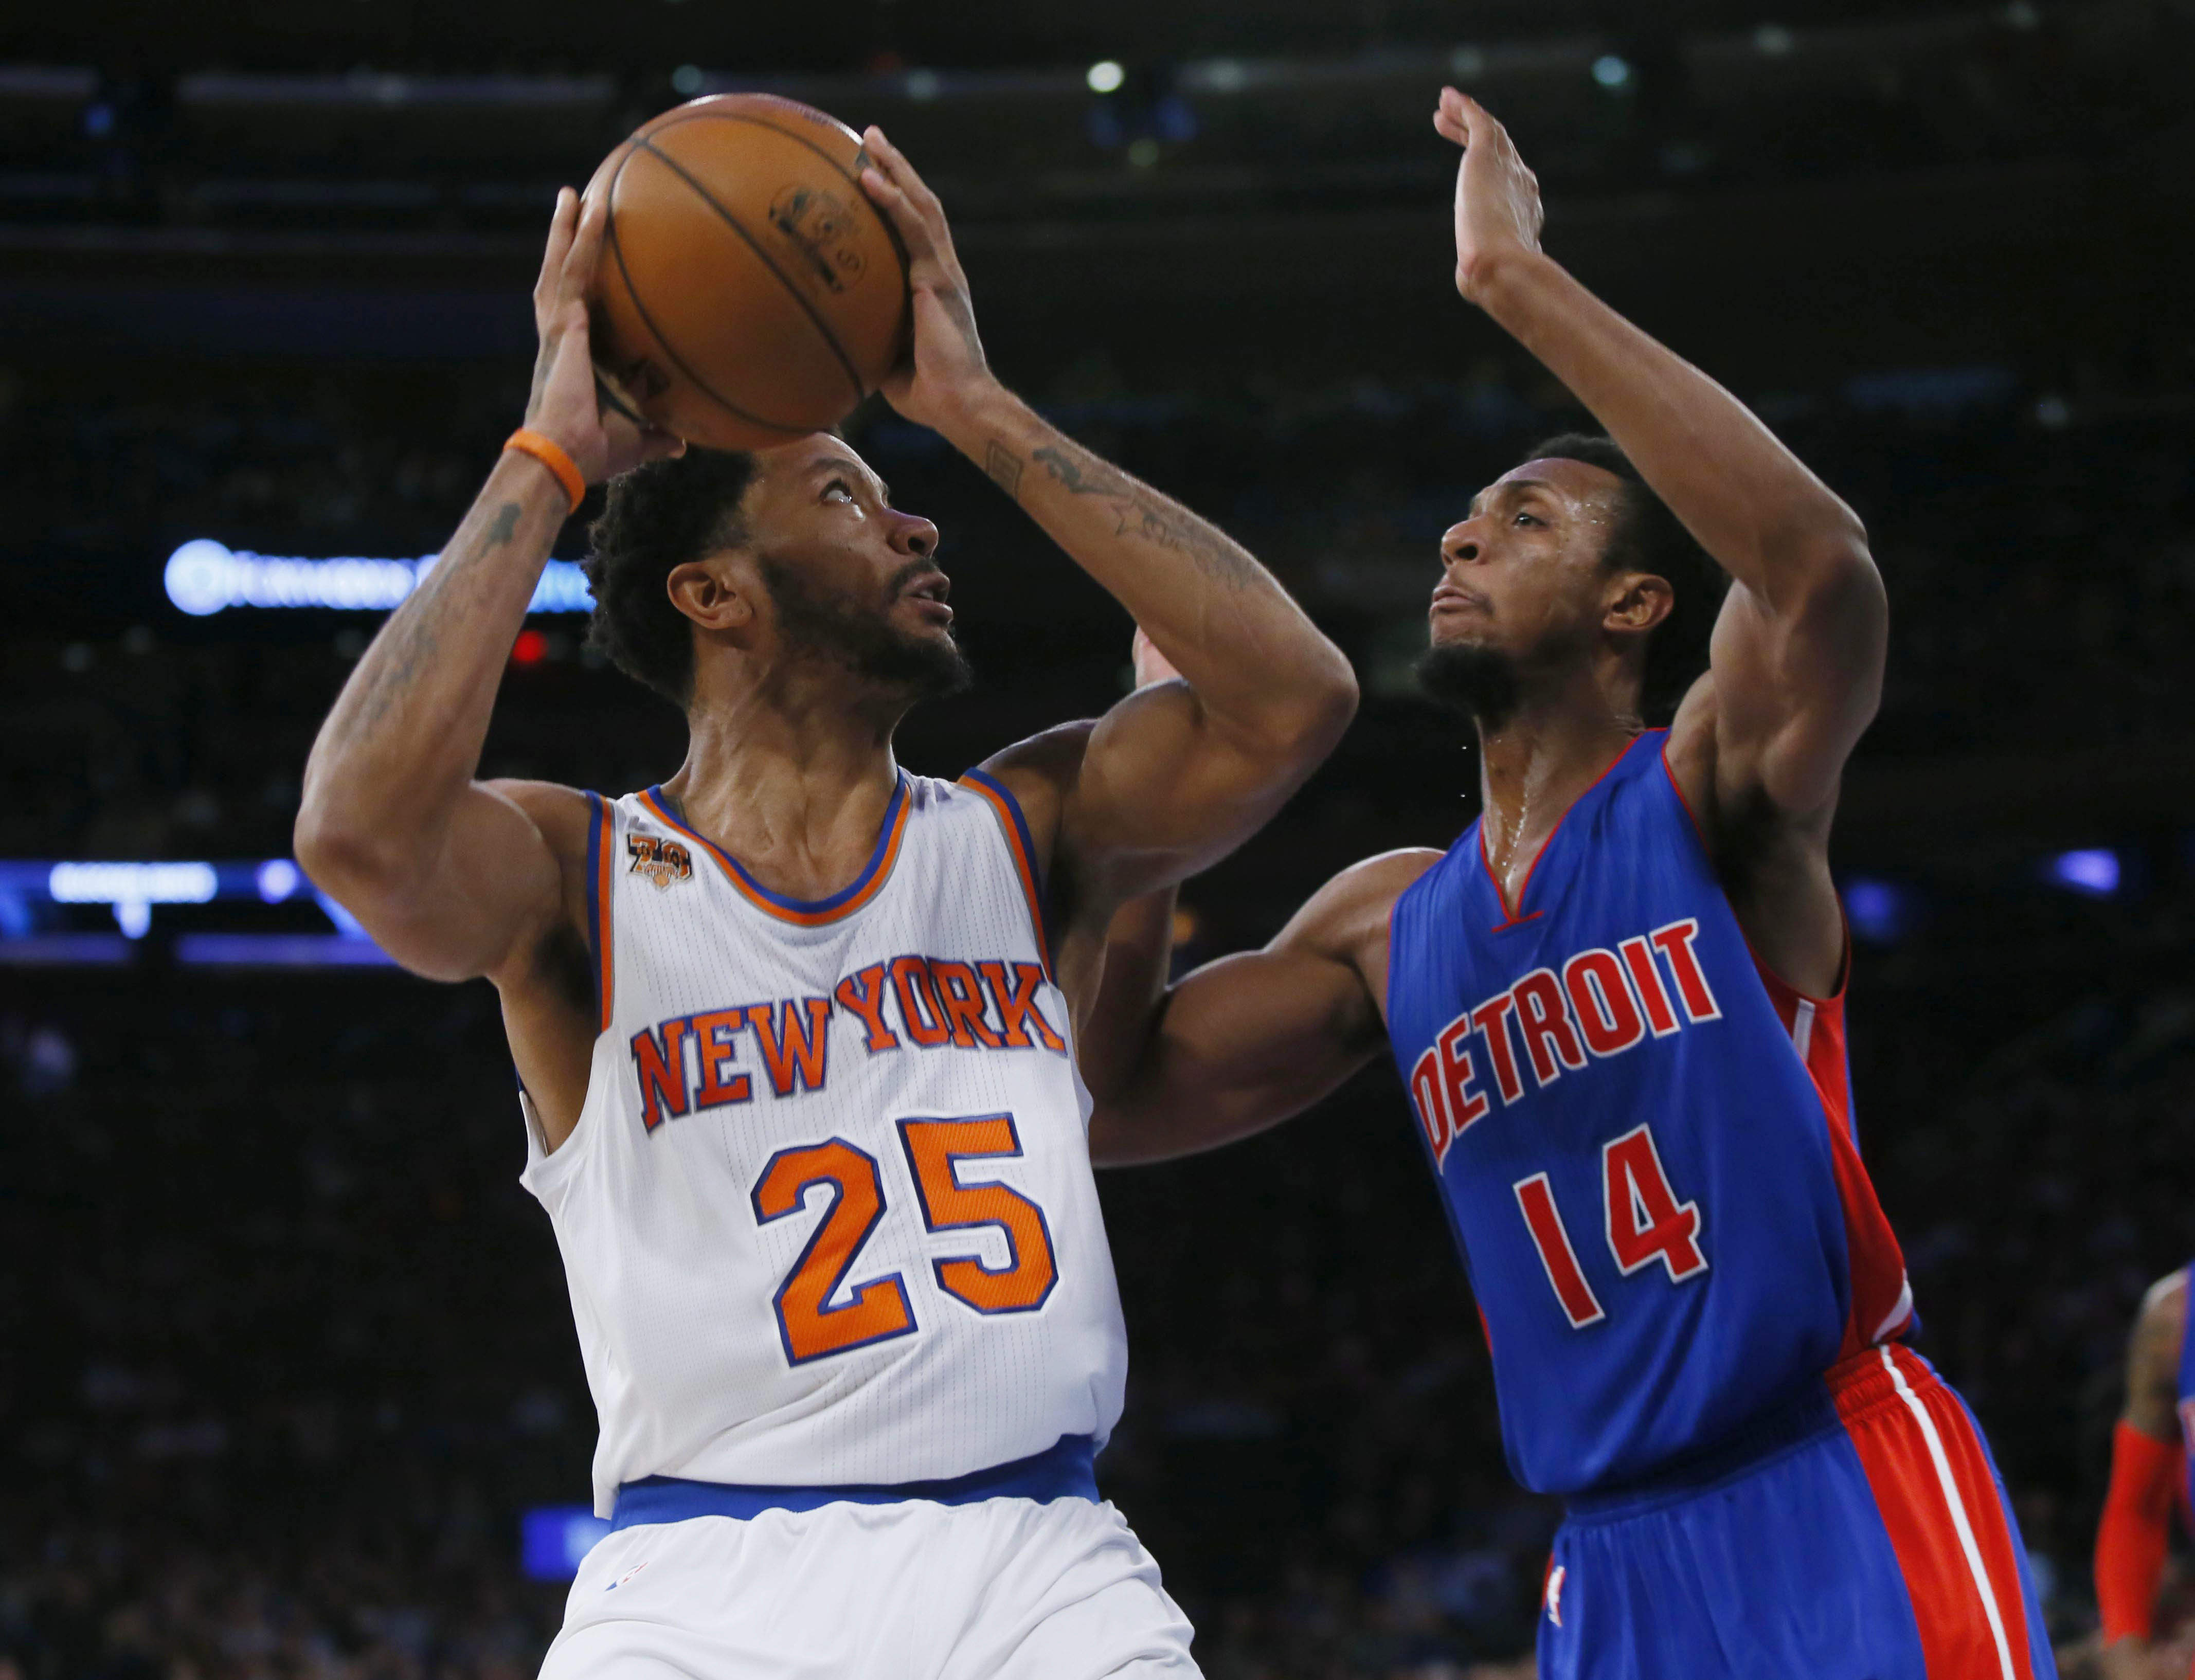 9682252-nba-detroit-pistons-at-new-york-knicks